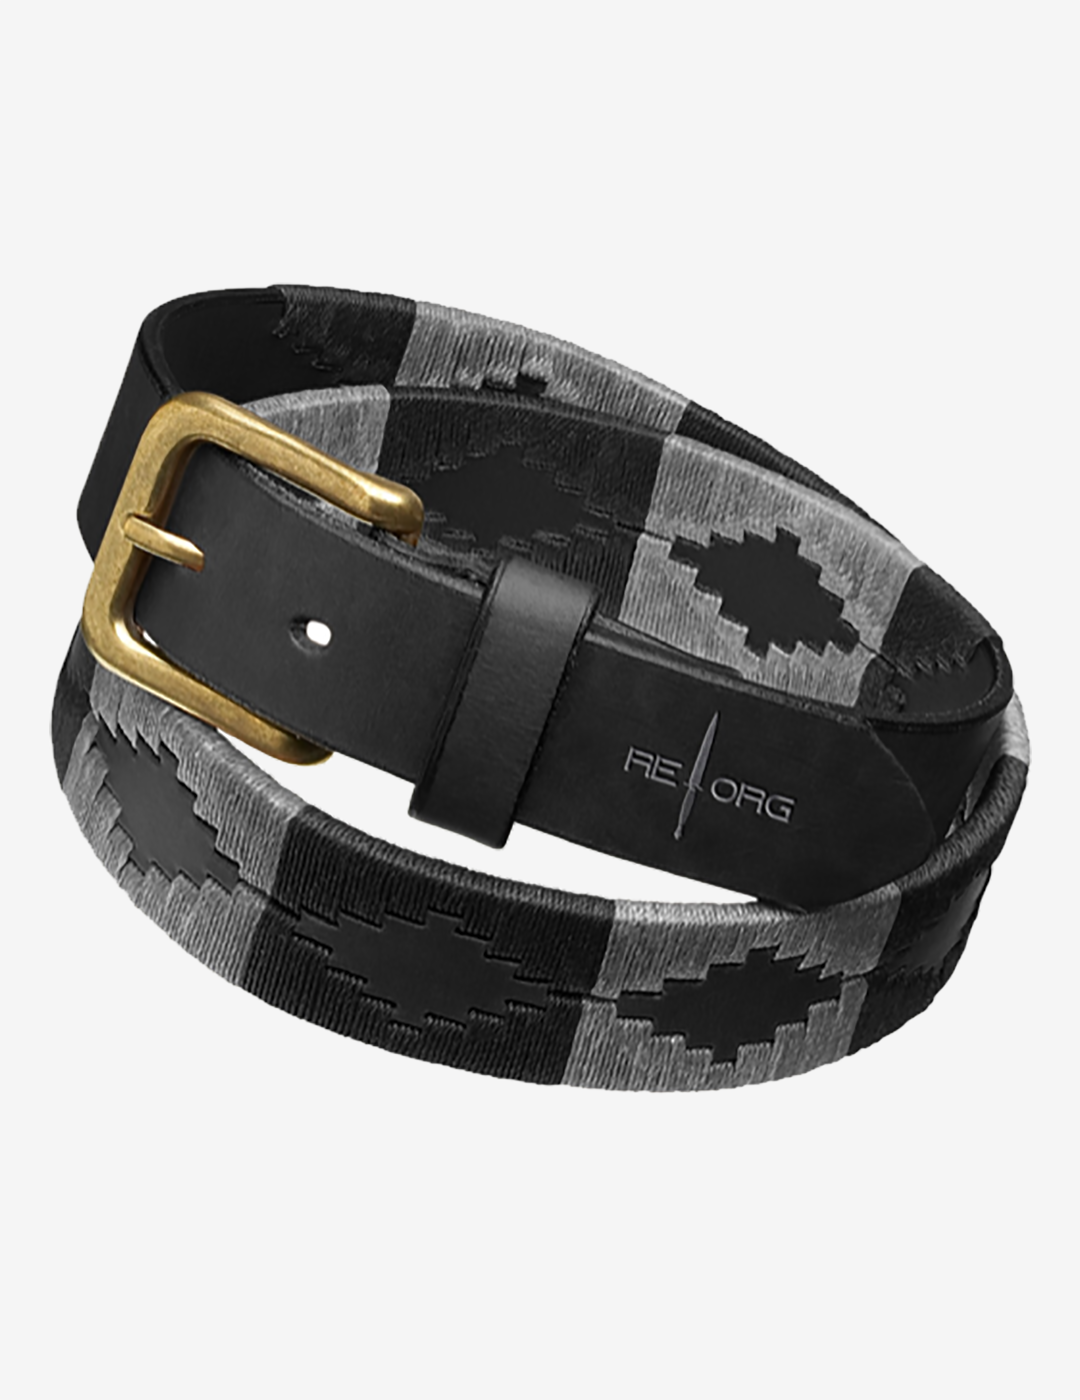 Reorg Pampeano Polo Belt